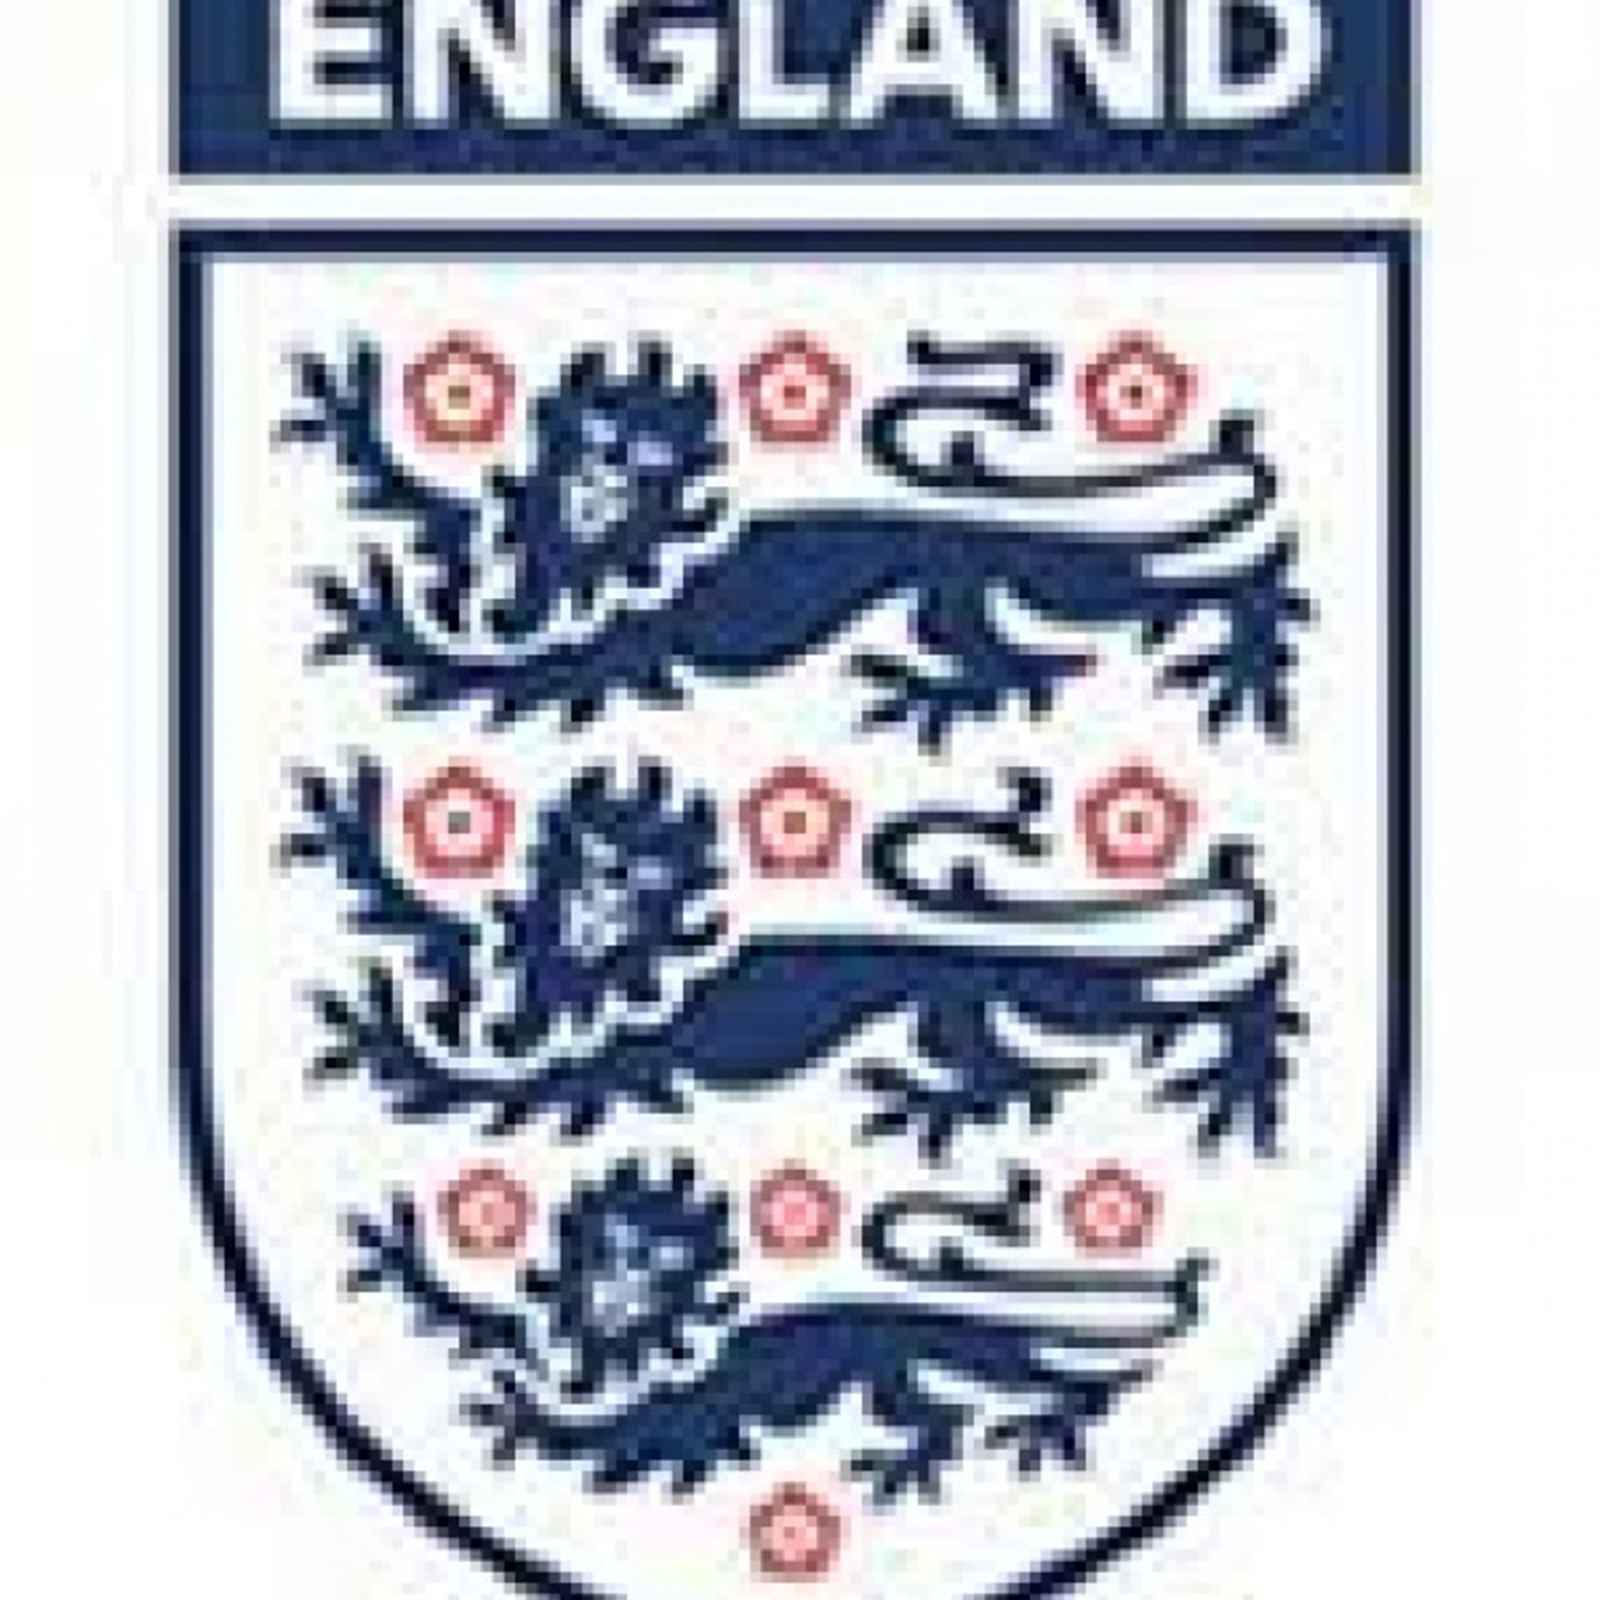 England v Iceland live tonight in BarRed from 7.30pm